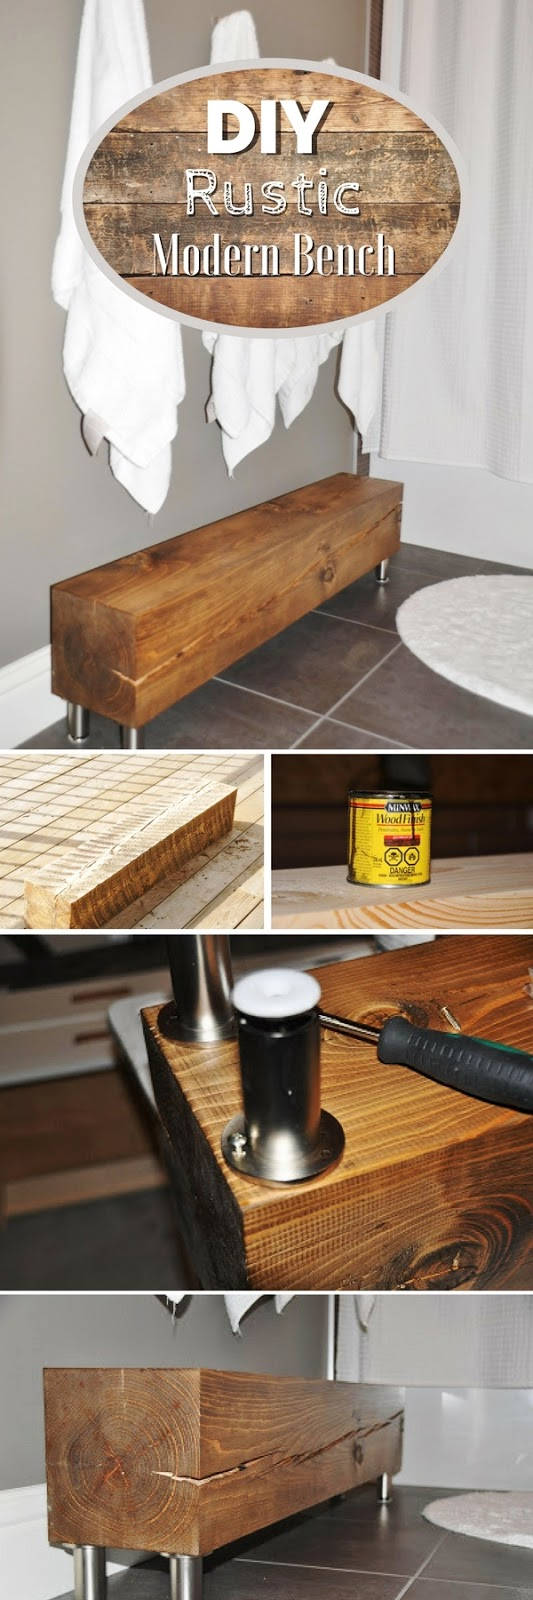 17 Diy Rustic Home Decor Ideas For Living Room: 17 Awesome DIY Wood Craft Ideas For House Design